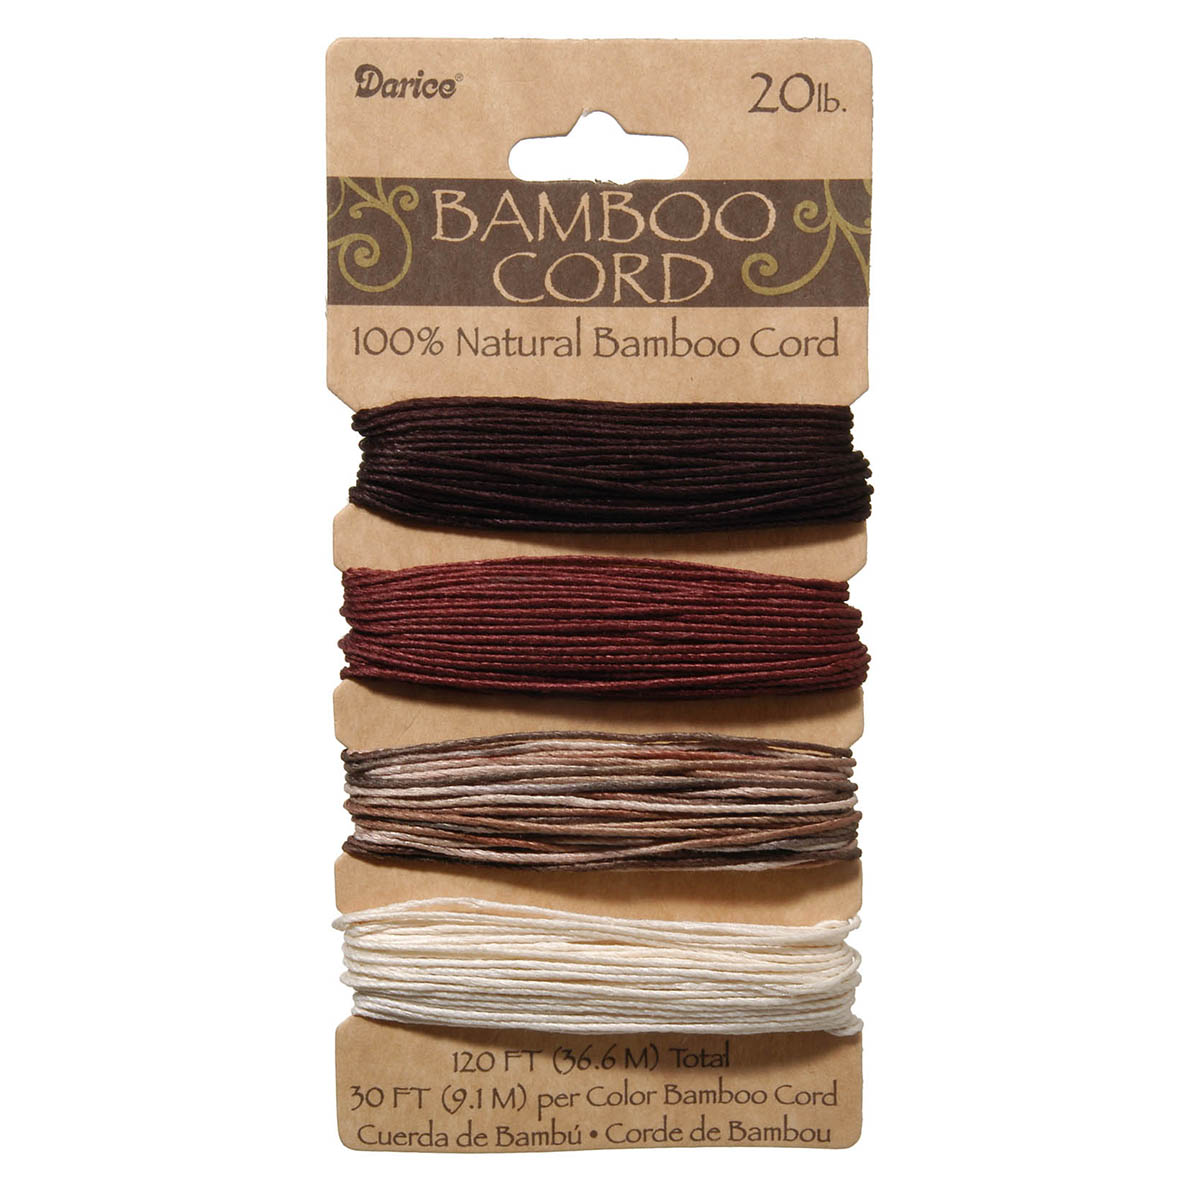 Natural Bamboo Cord, Earthy Colors, 120ft. 20lb.